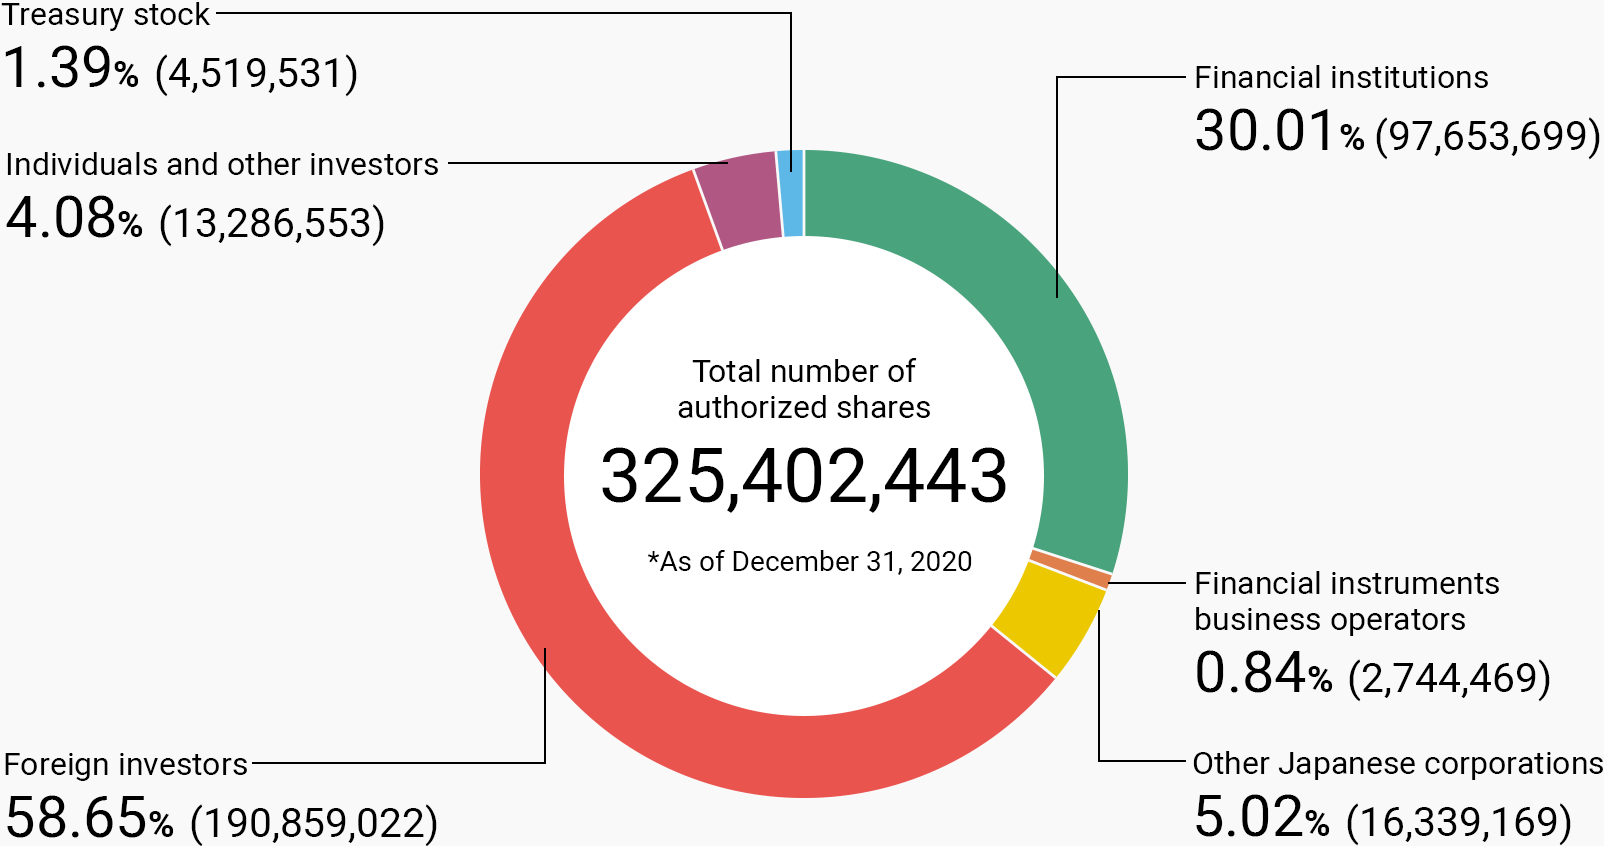 Financial institutions 30.01%(97,653,699), Financial instruments business operators 0.84%(2,744,469), Other Japanese corporations 5.02%(16,339,169), Foreign investors 58.65%(190,859,022), Individuals and other investors 4.08%(13,286,553), Treasury stock 1.39%(4,519,531).